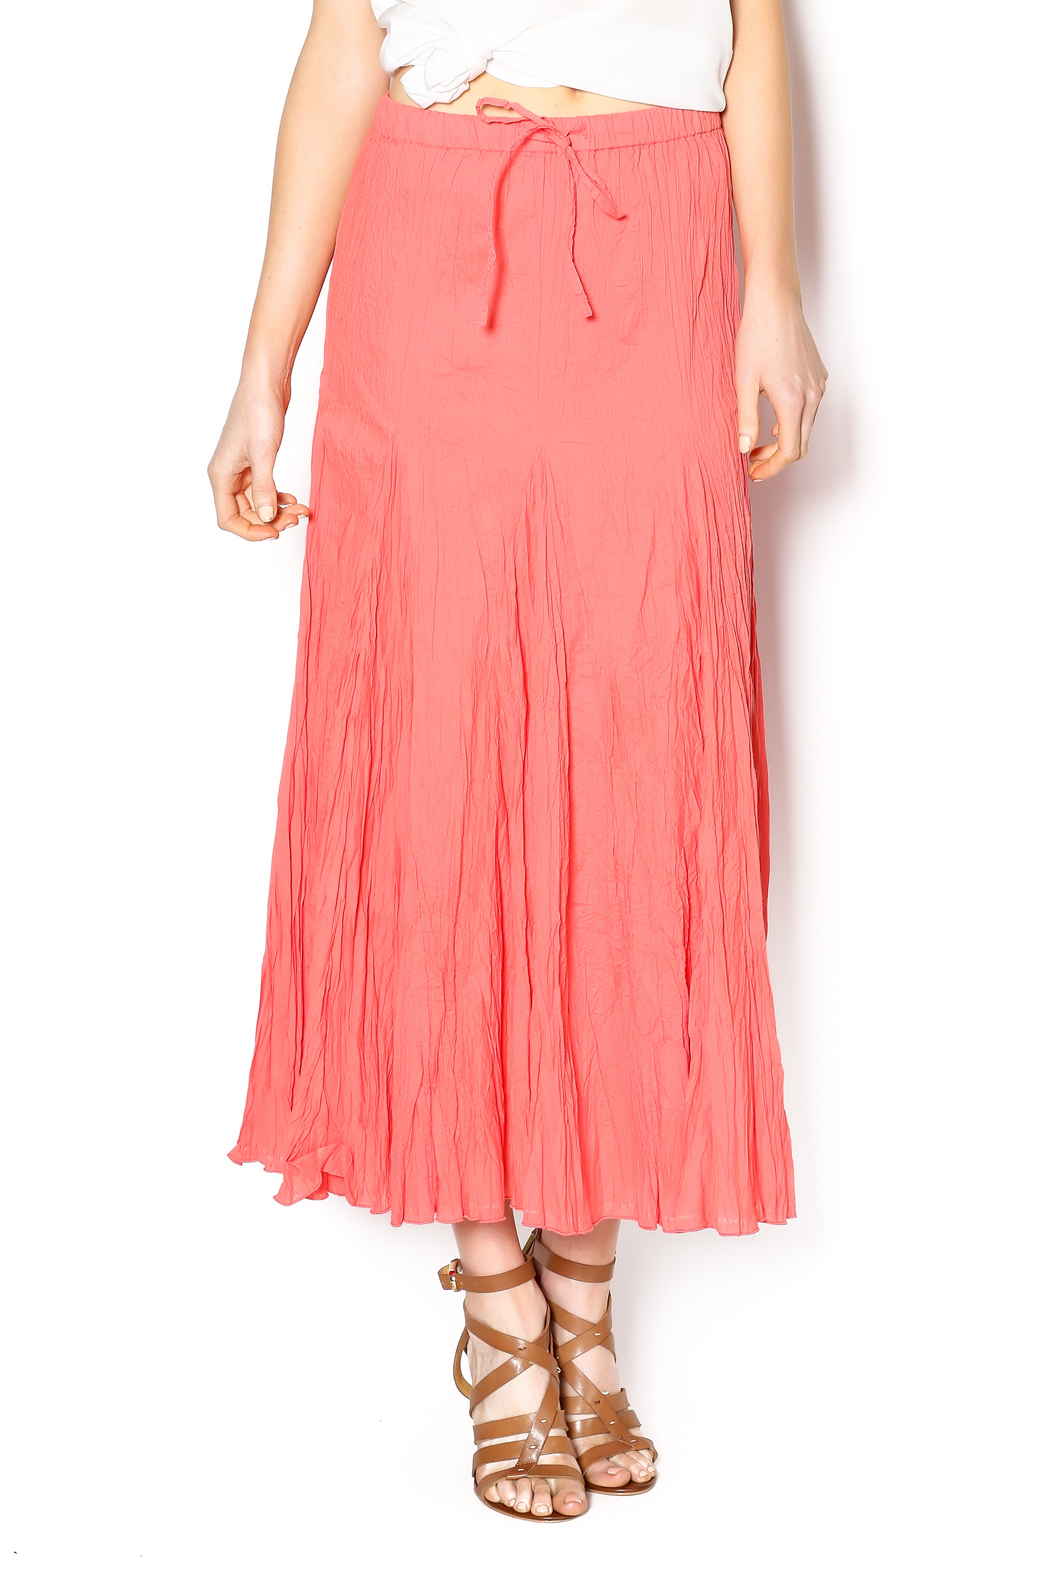 bohemian bird coral maxi skirt from by southern